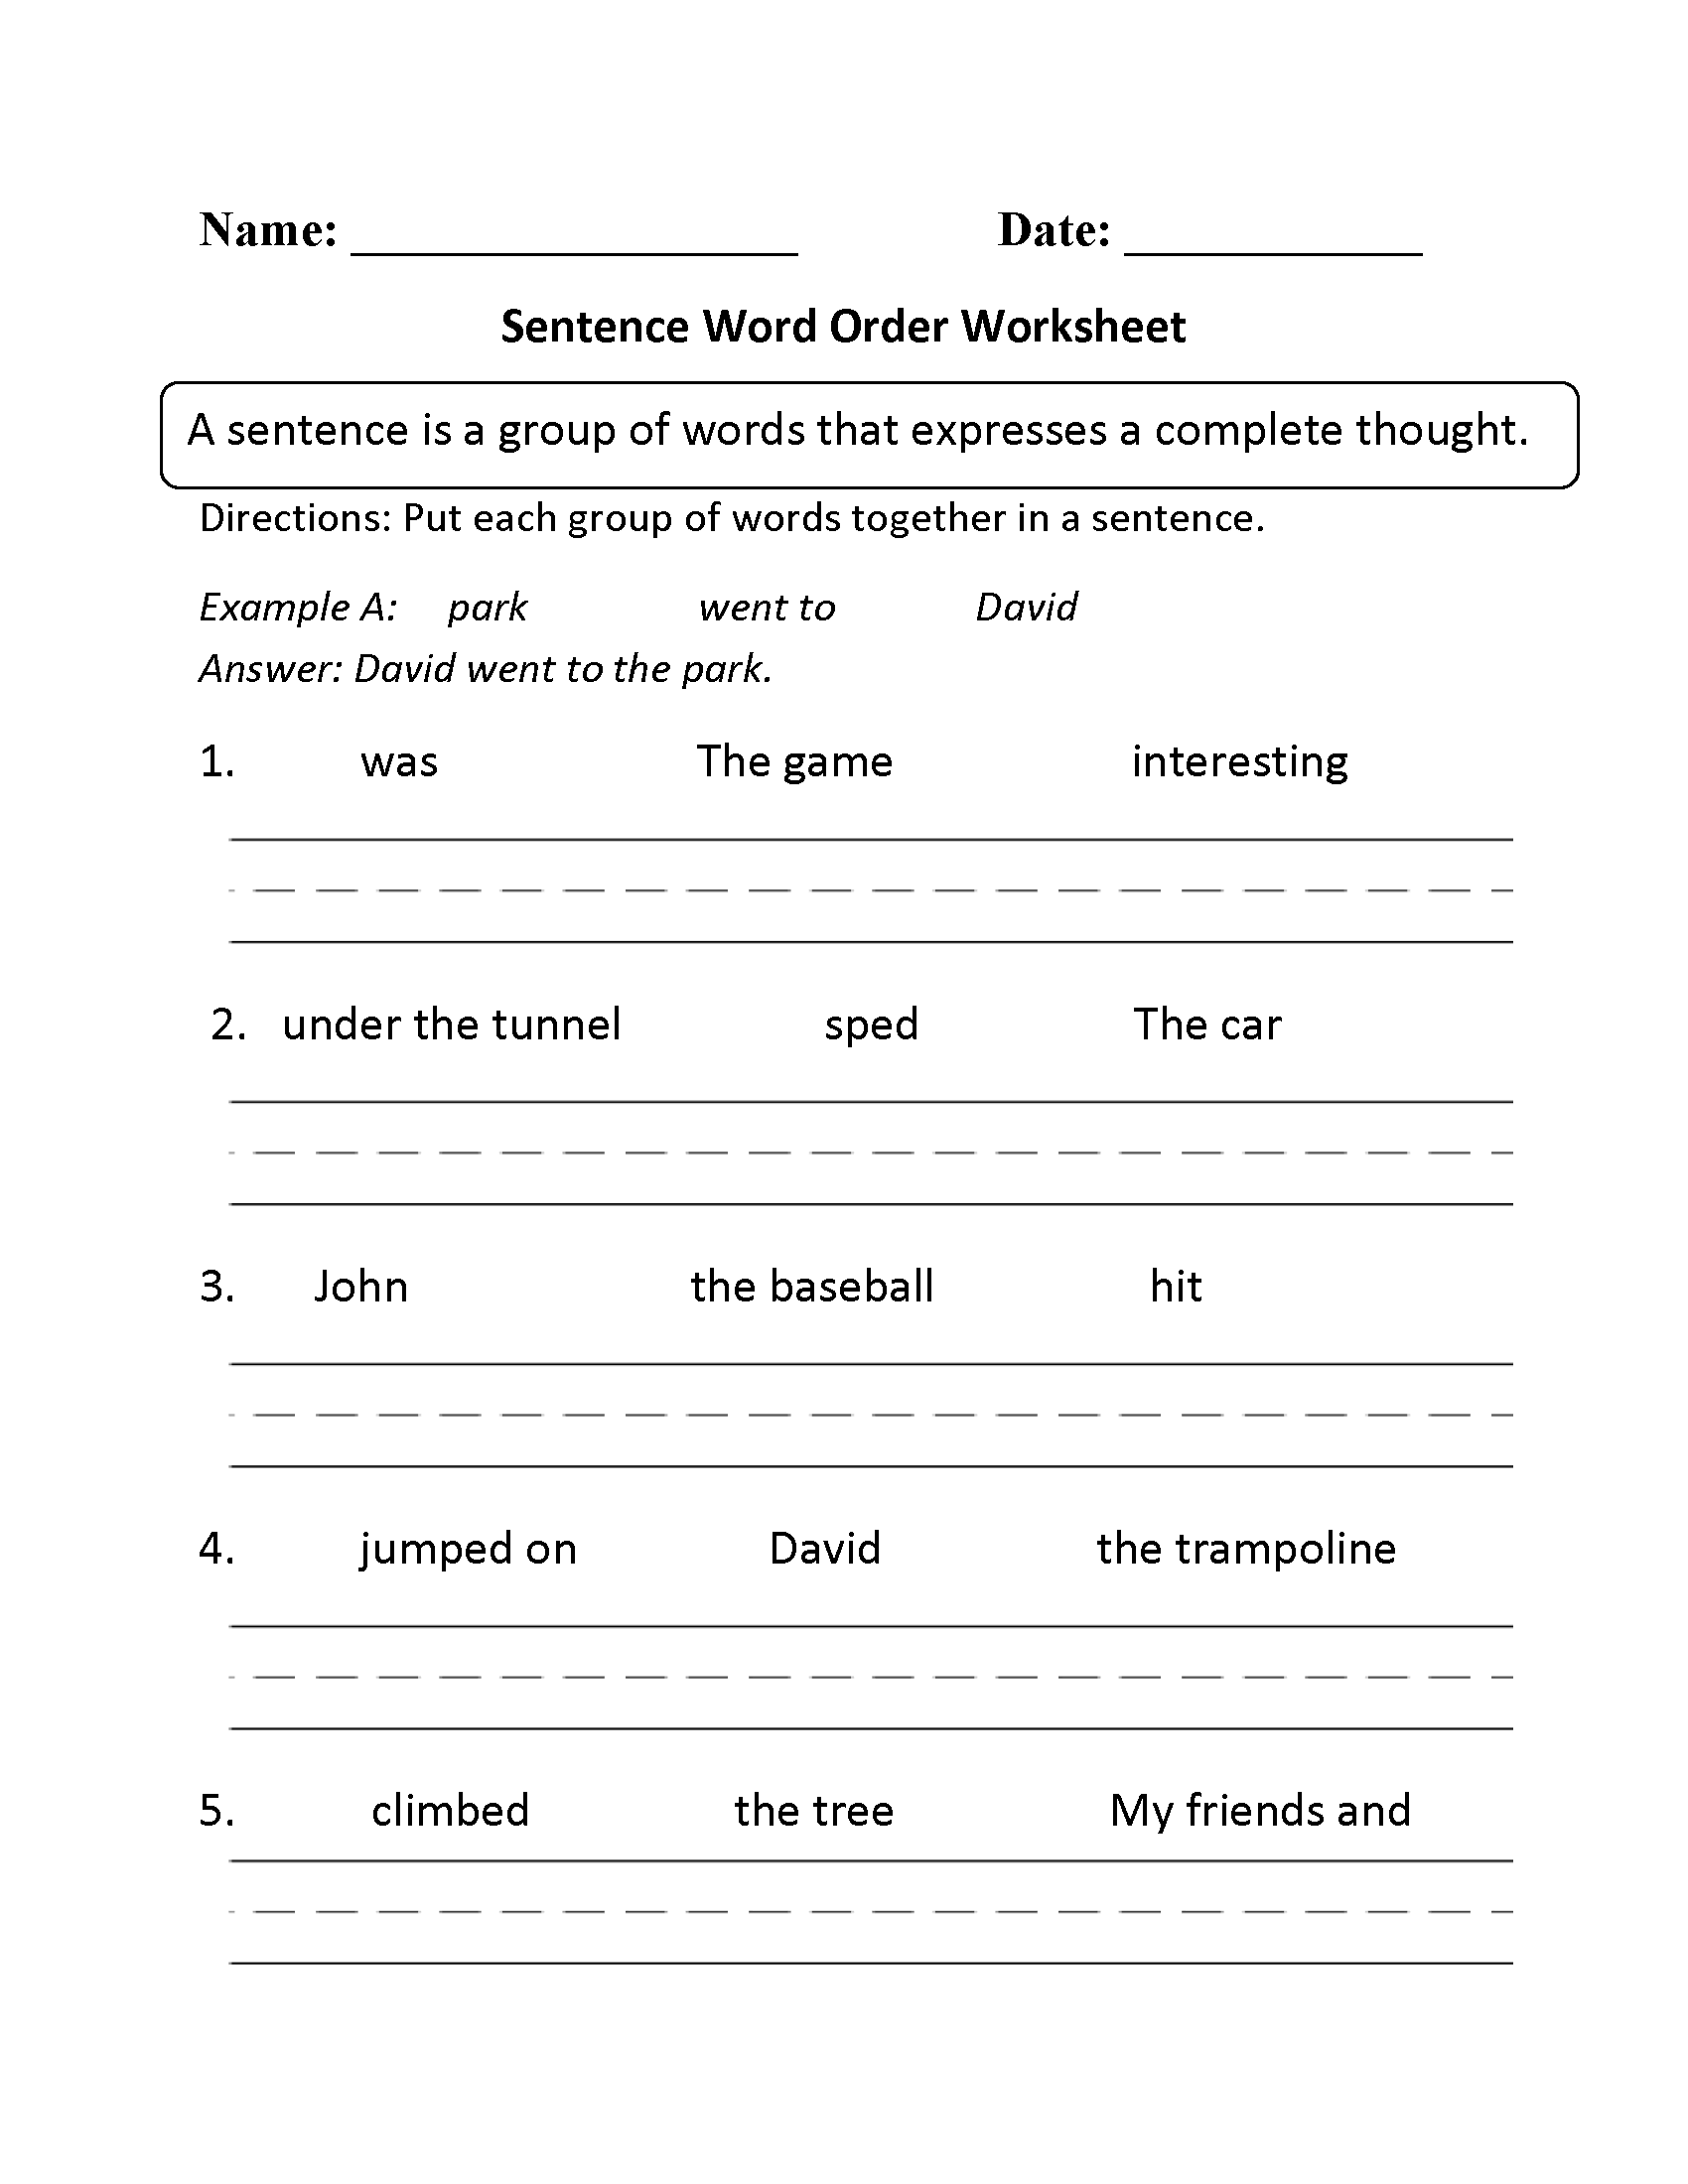 Worksheets Sentence Types Worksheets grammar worksheets sentence structure building worksheets